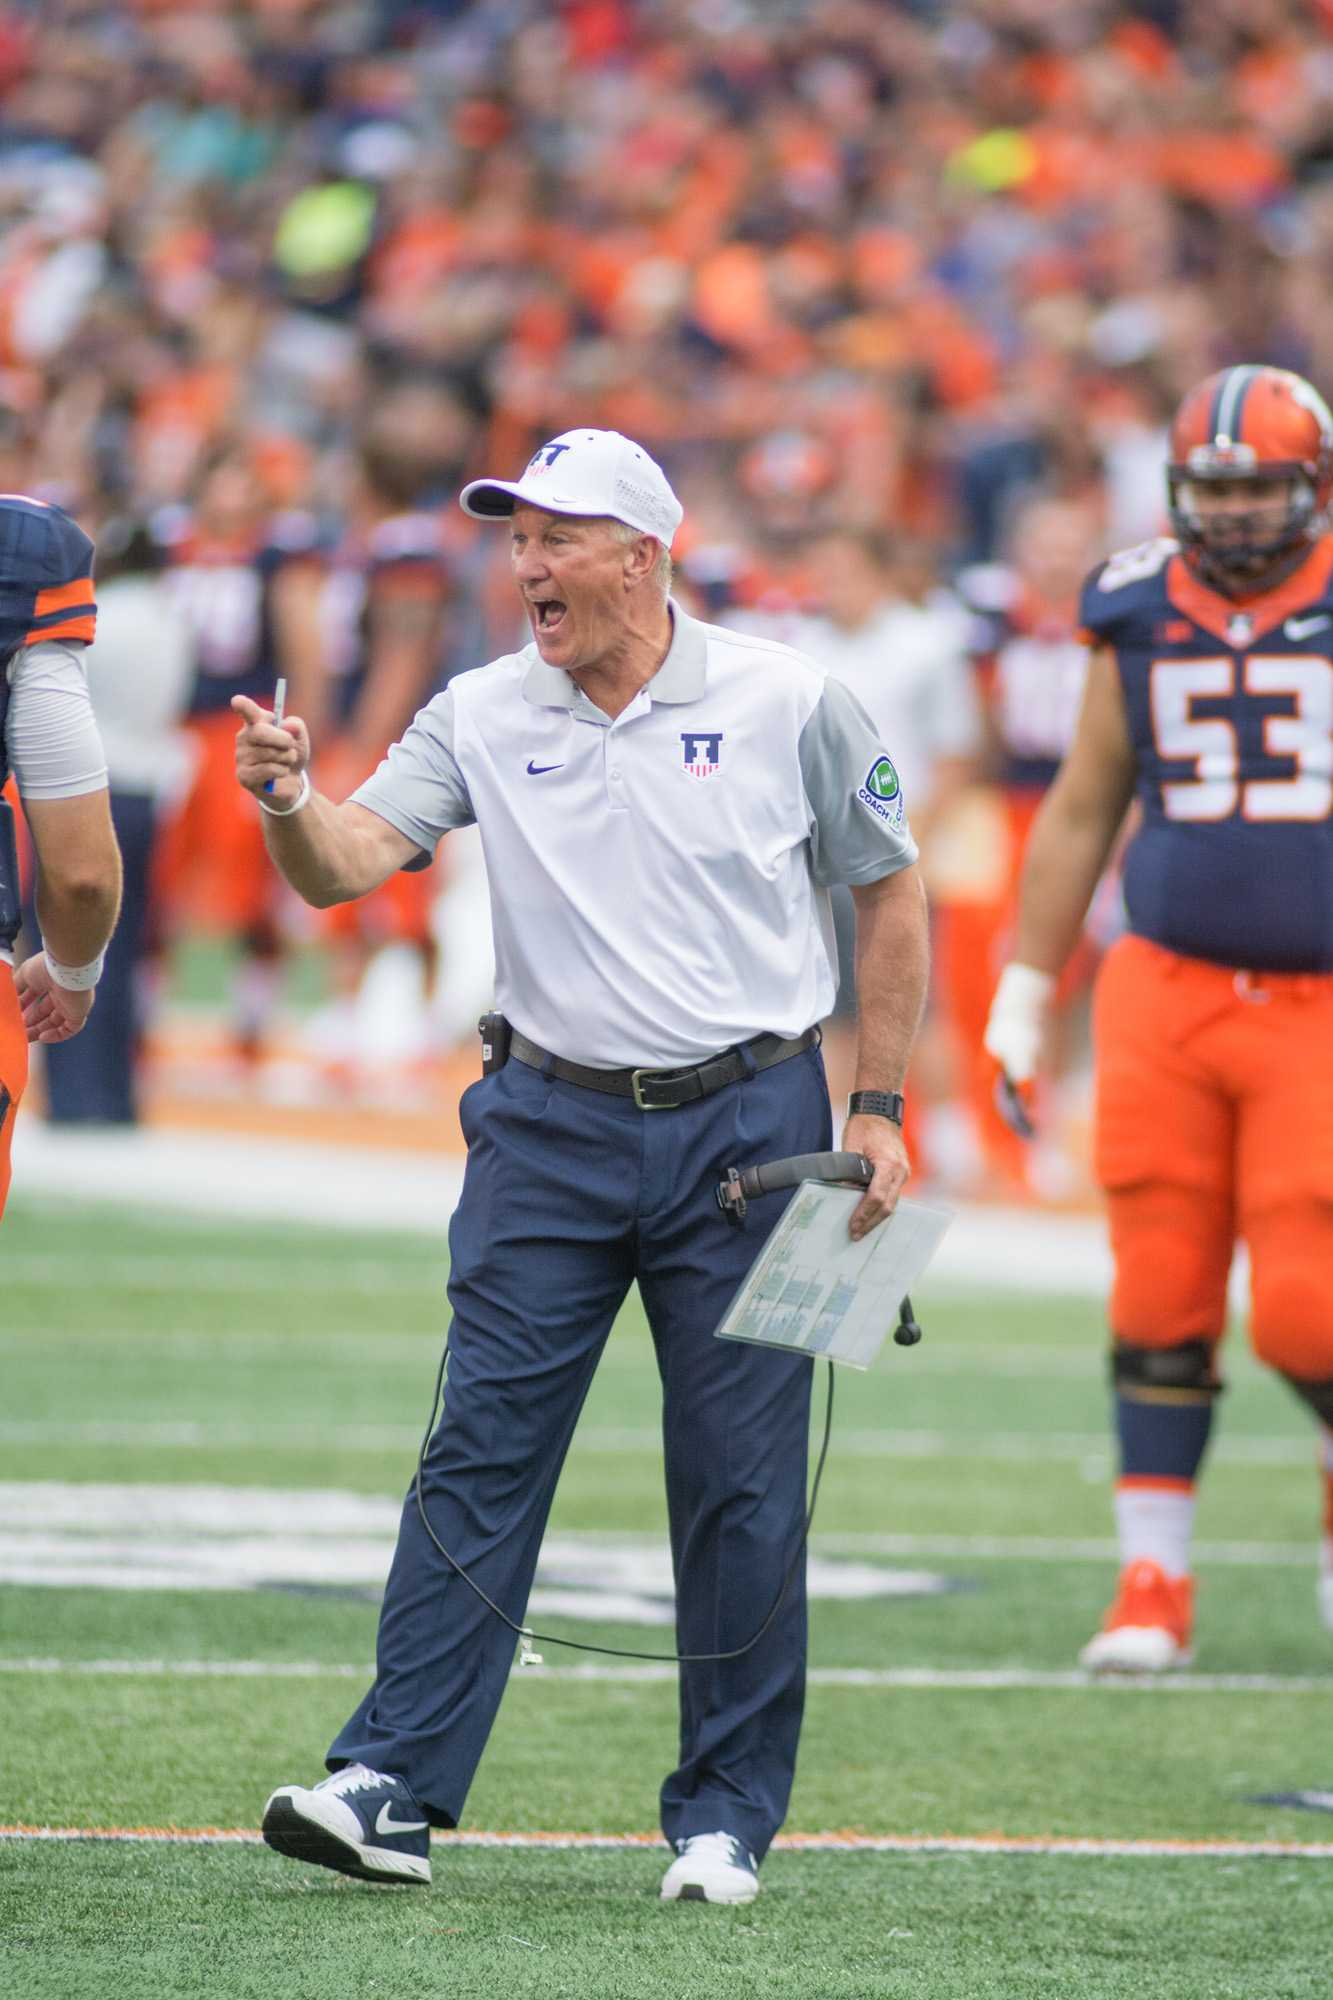 %3Cp%3ETim+Beckman%27s+biggest+win+at+Illinois+was+against+Minnesota.+Now%2C+a+year+later%2C+Bill+Cubit+needs+a+win+to+have+a+shot+at+retaining+the+Illini+head+coaching+job.%3C%2Fp%3E